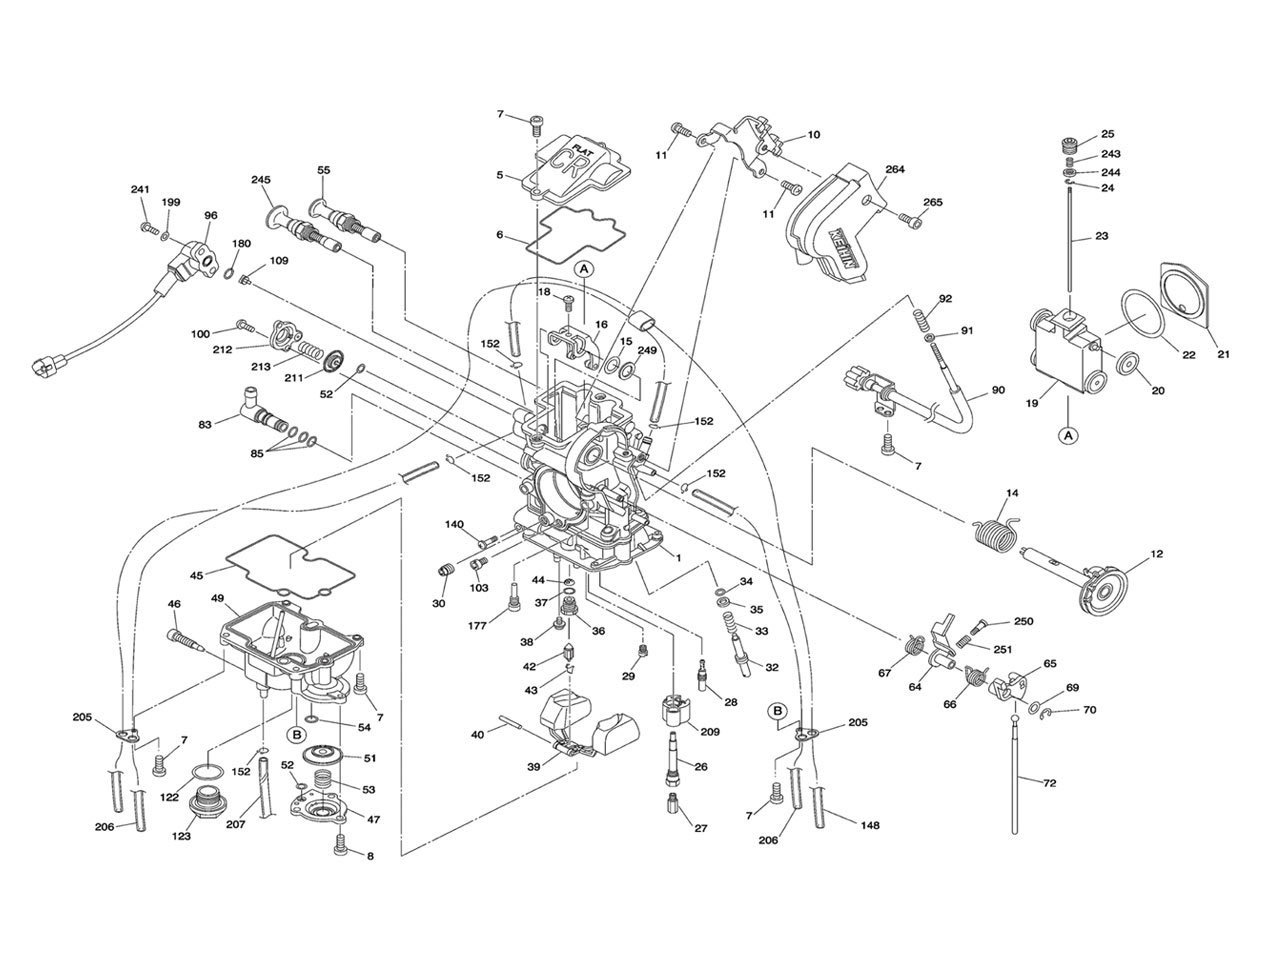 Keihin Carburetor Parts Diagrams Images